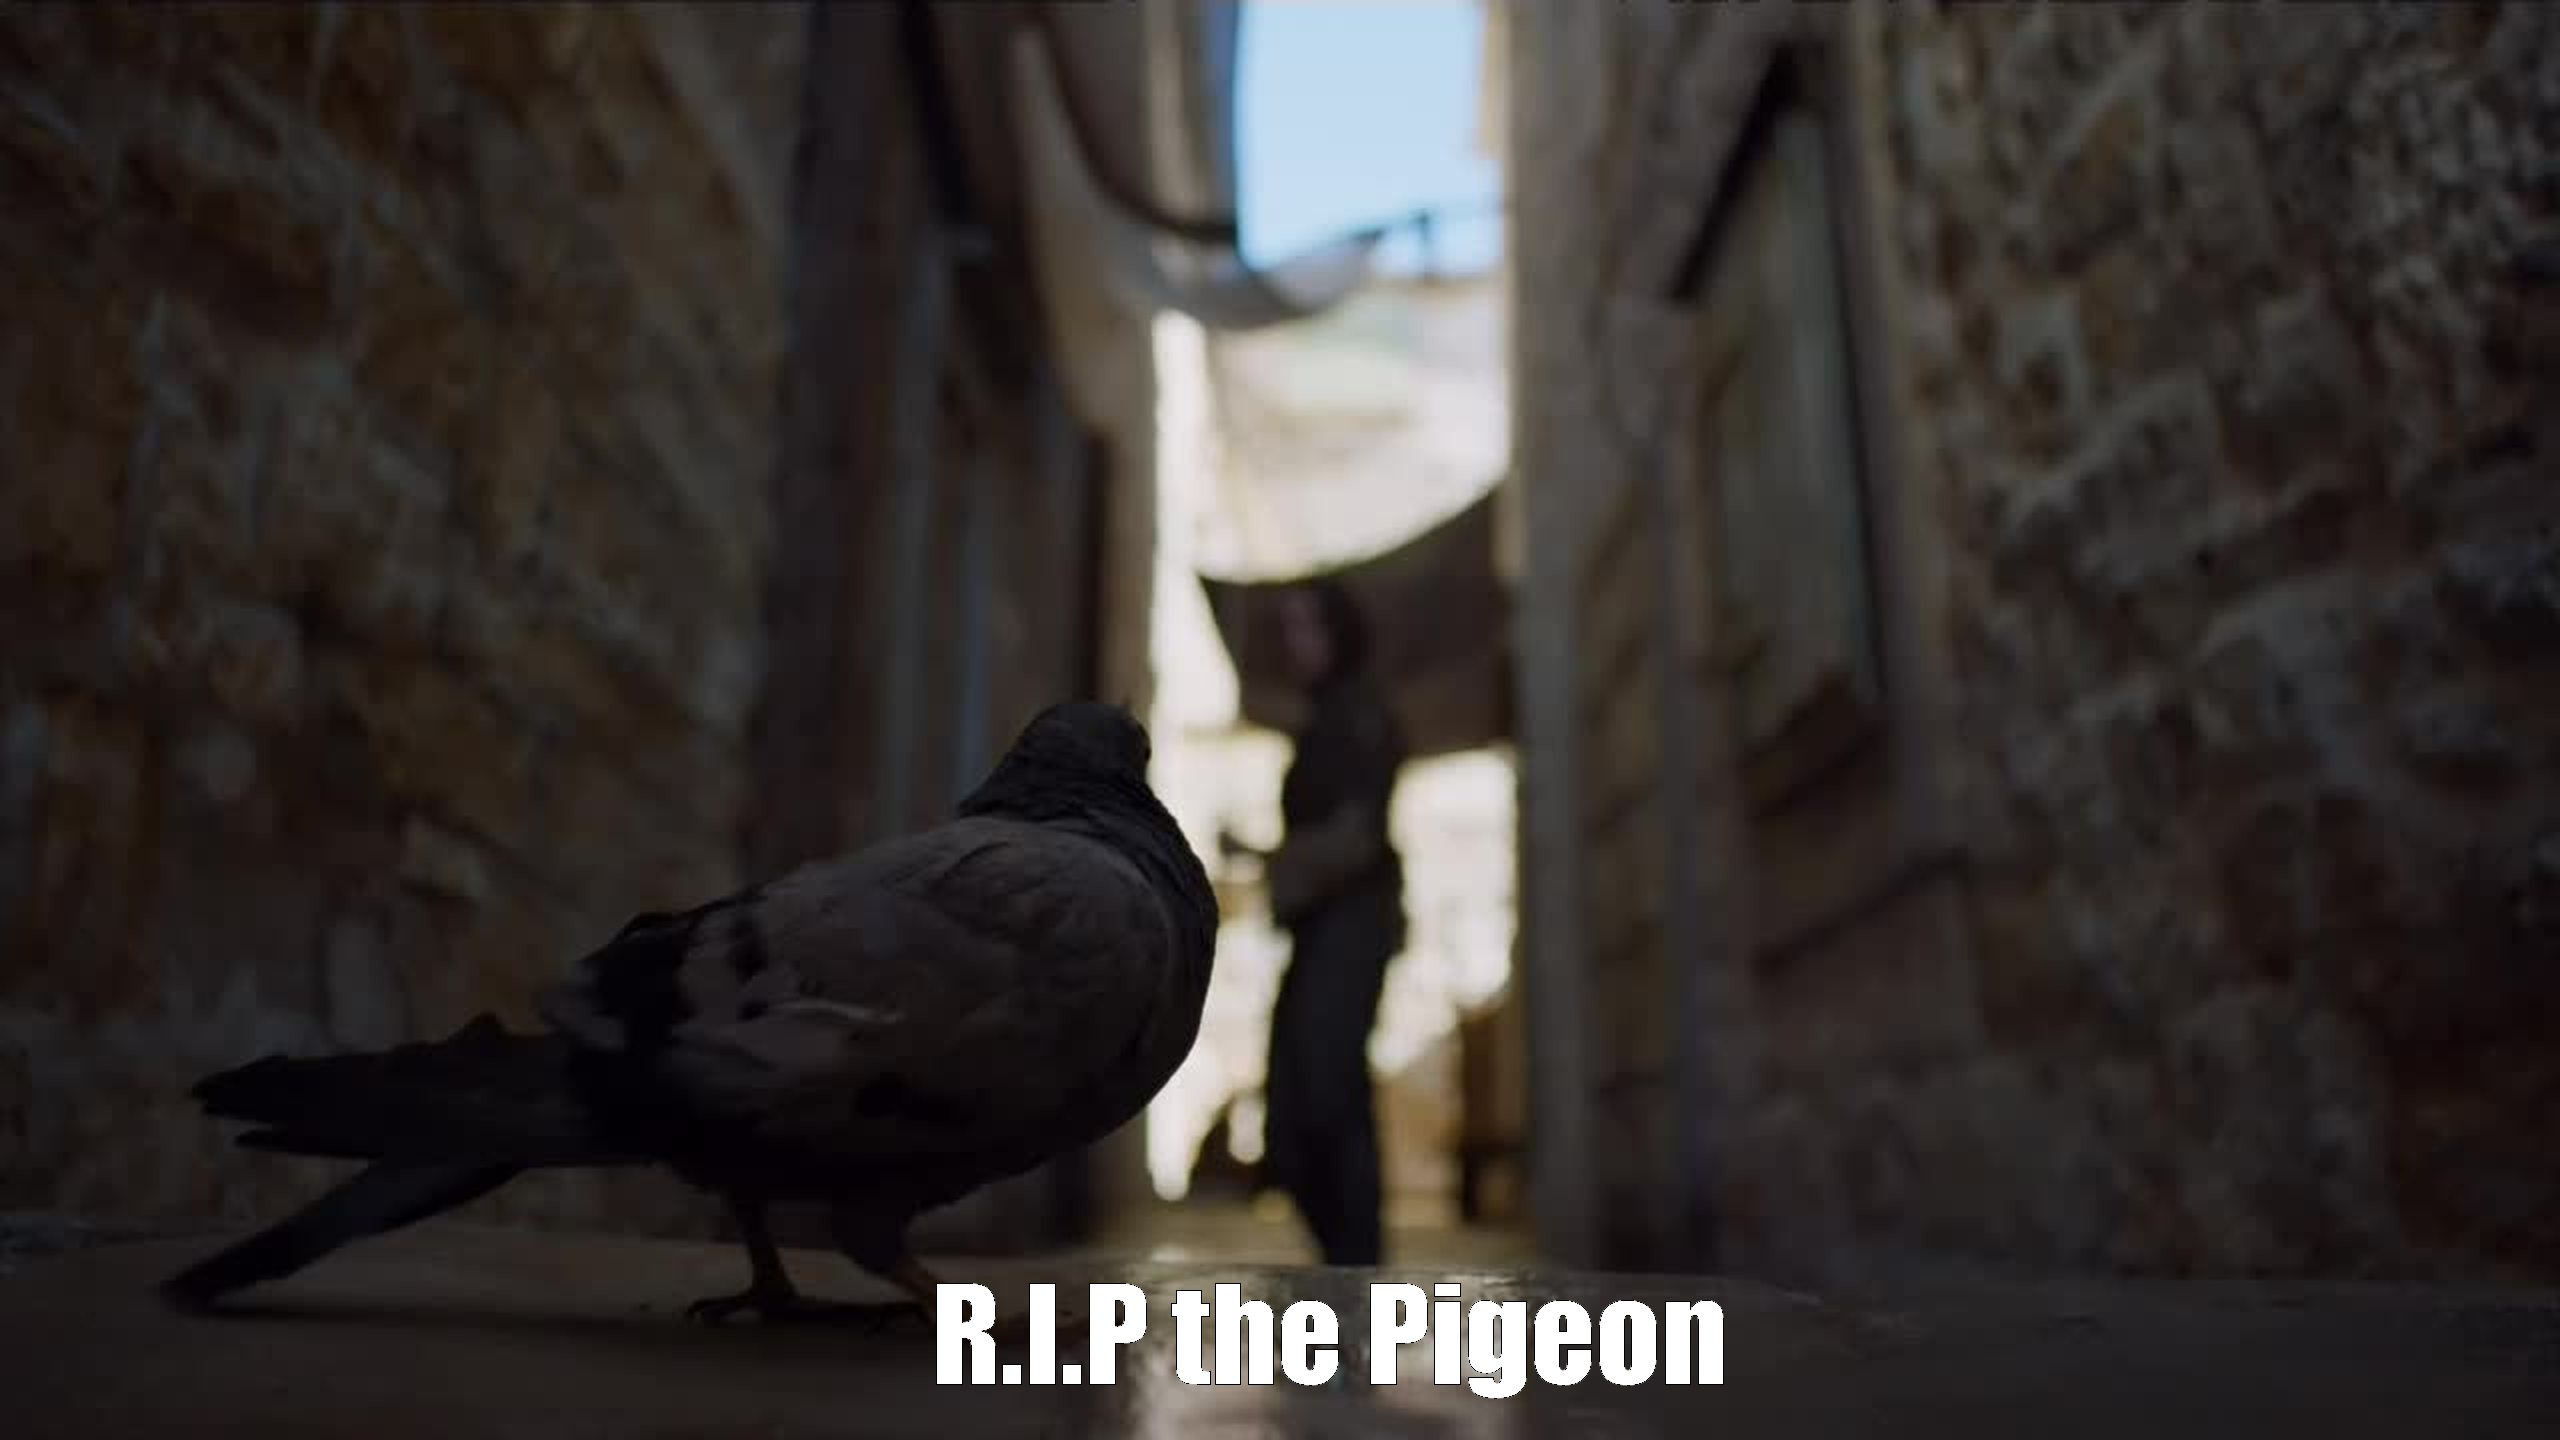 An other terrible death in this episode. G.R.R has really no limits. Rest in peace. You won't be forgotten #thepigeon